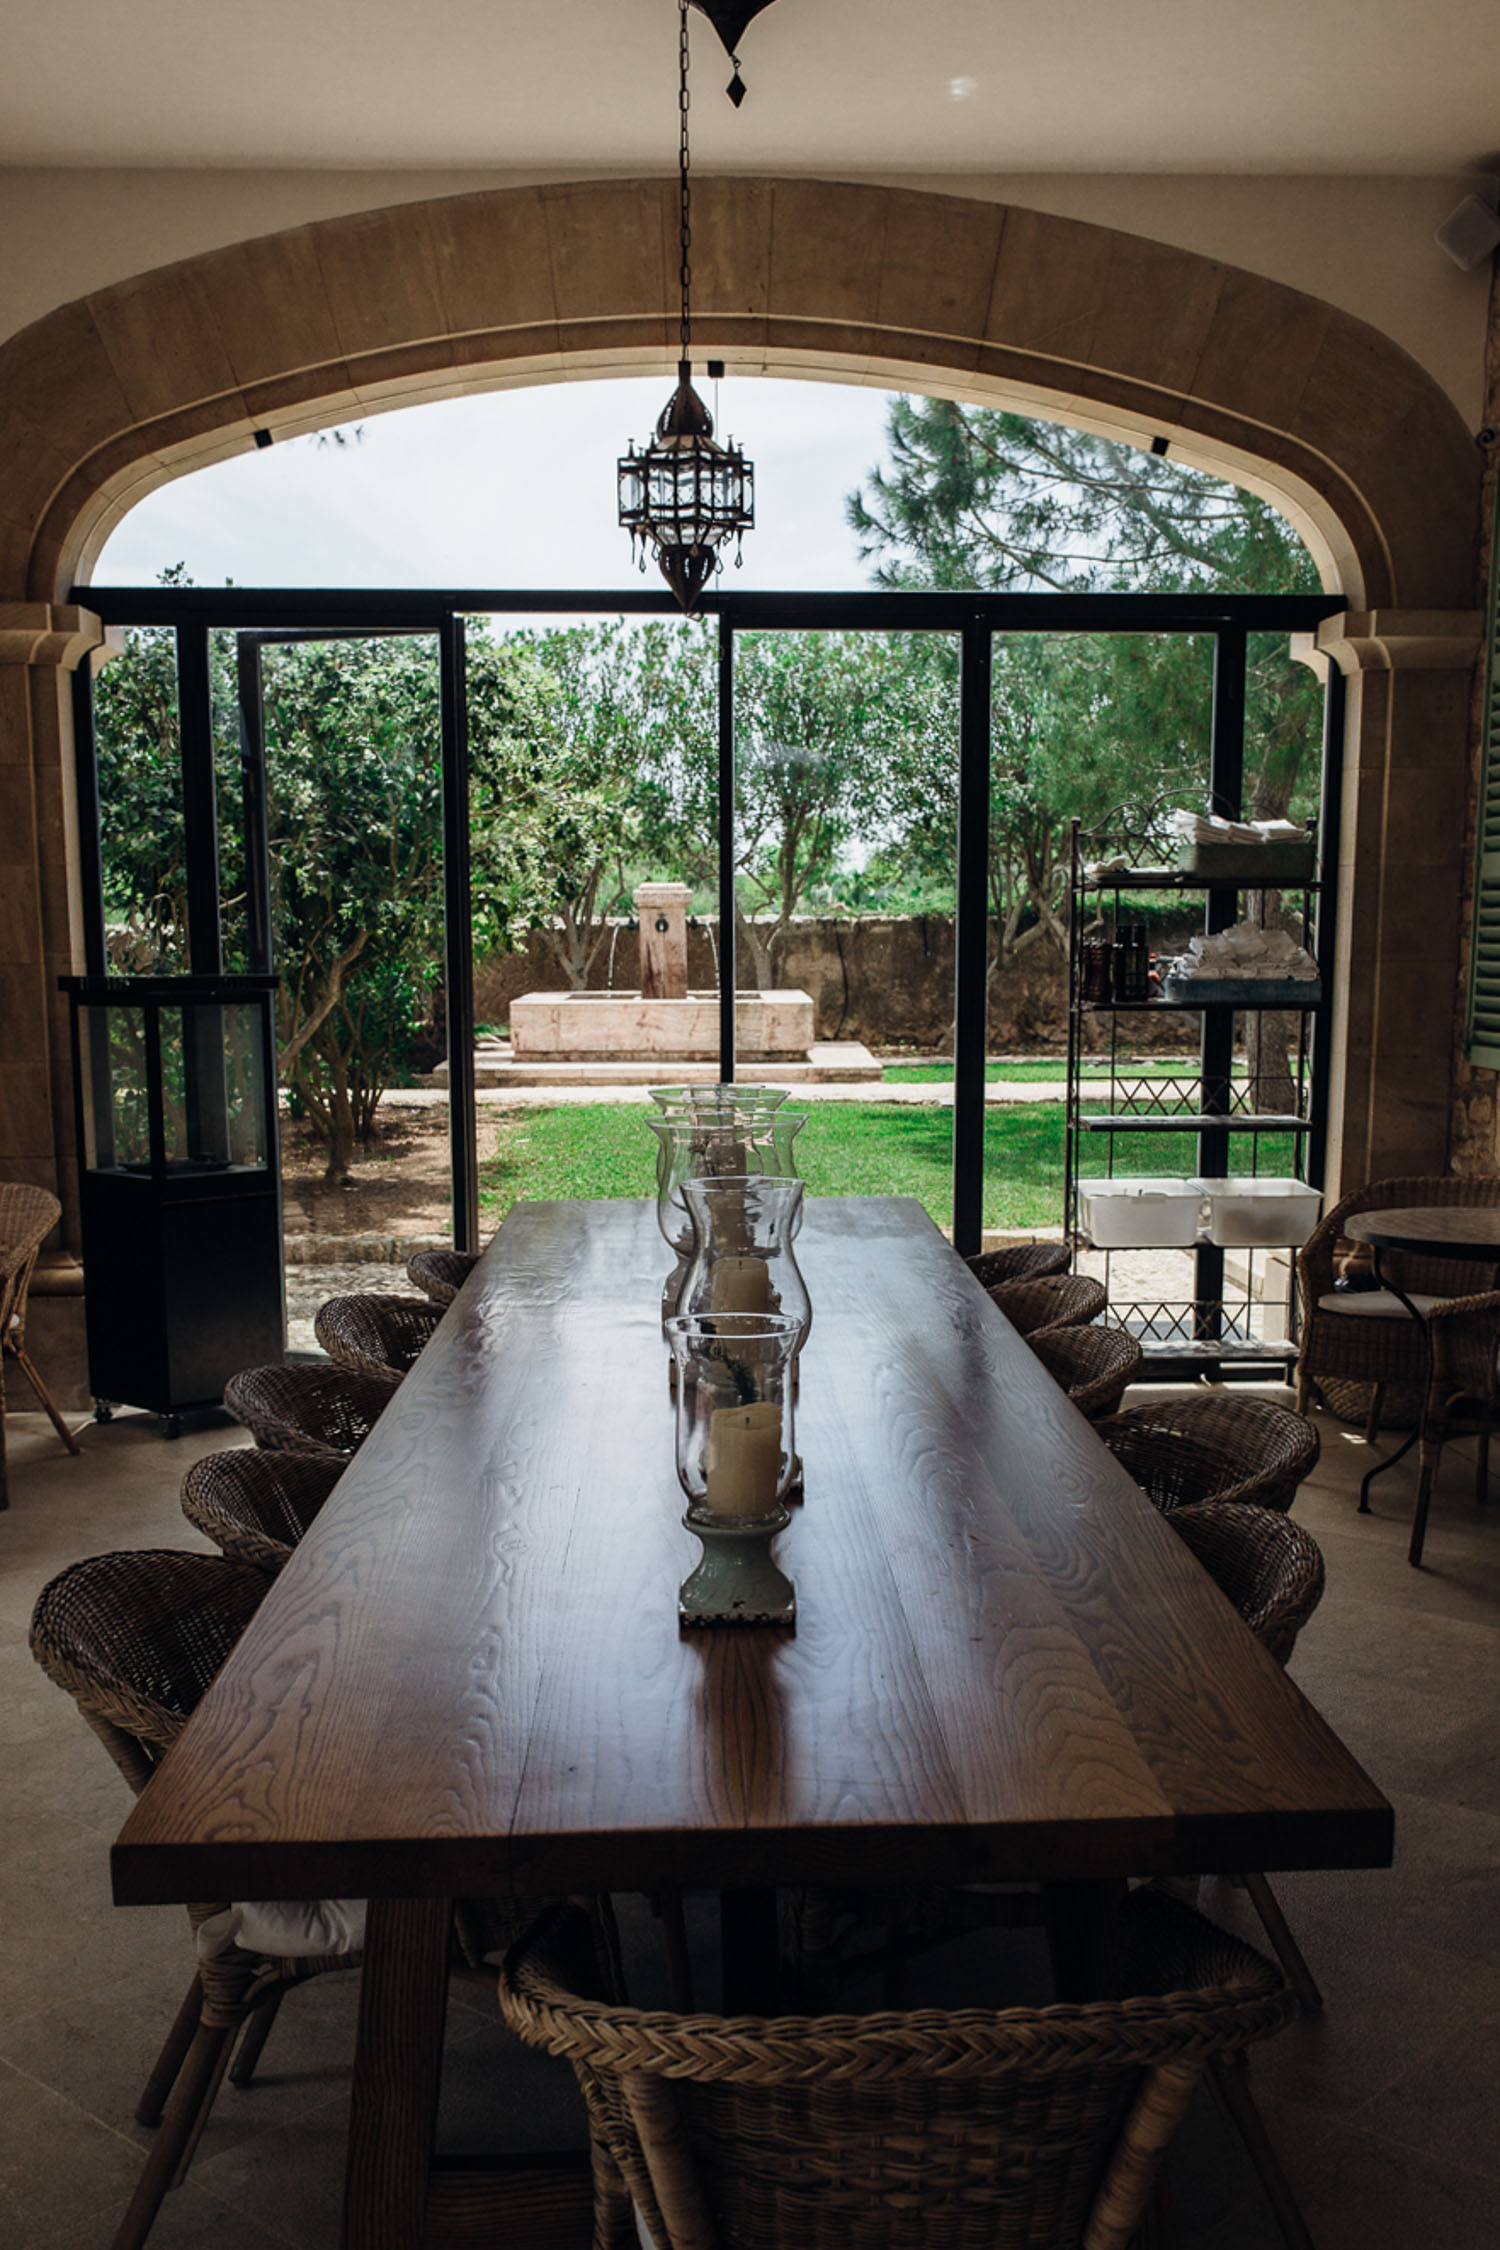 Cal-Reiet-Dining-Table-Mallorca-1254.jpg